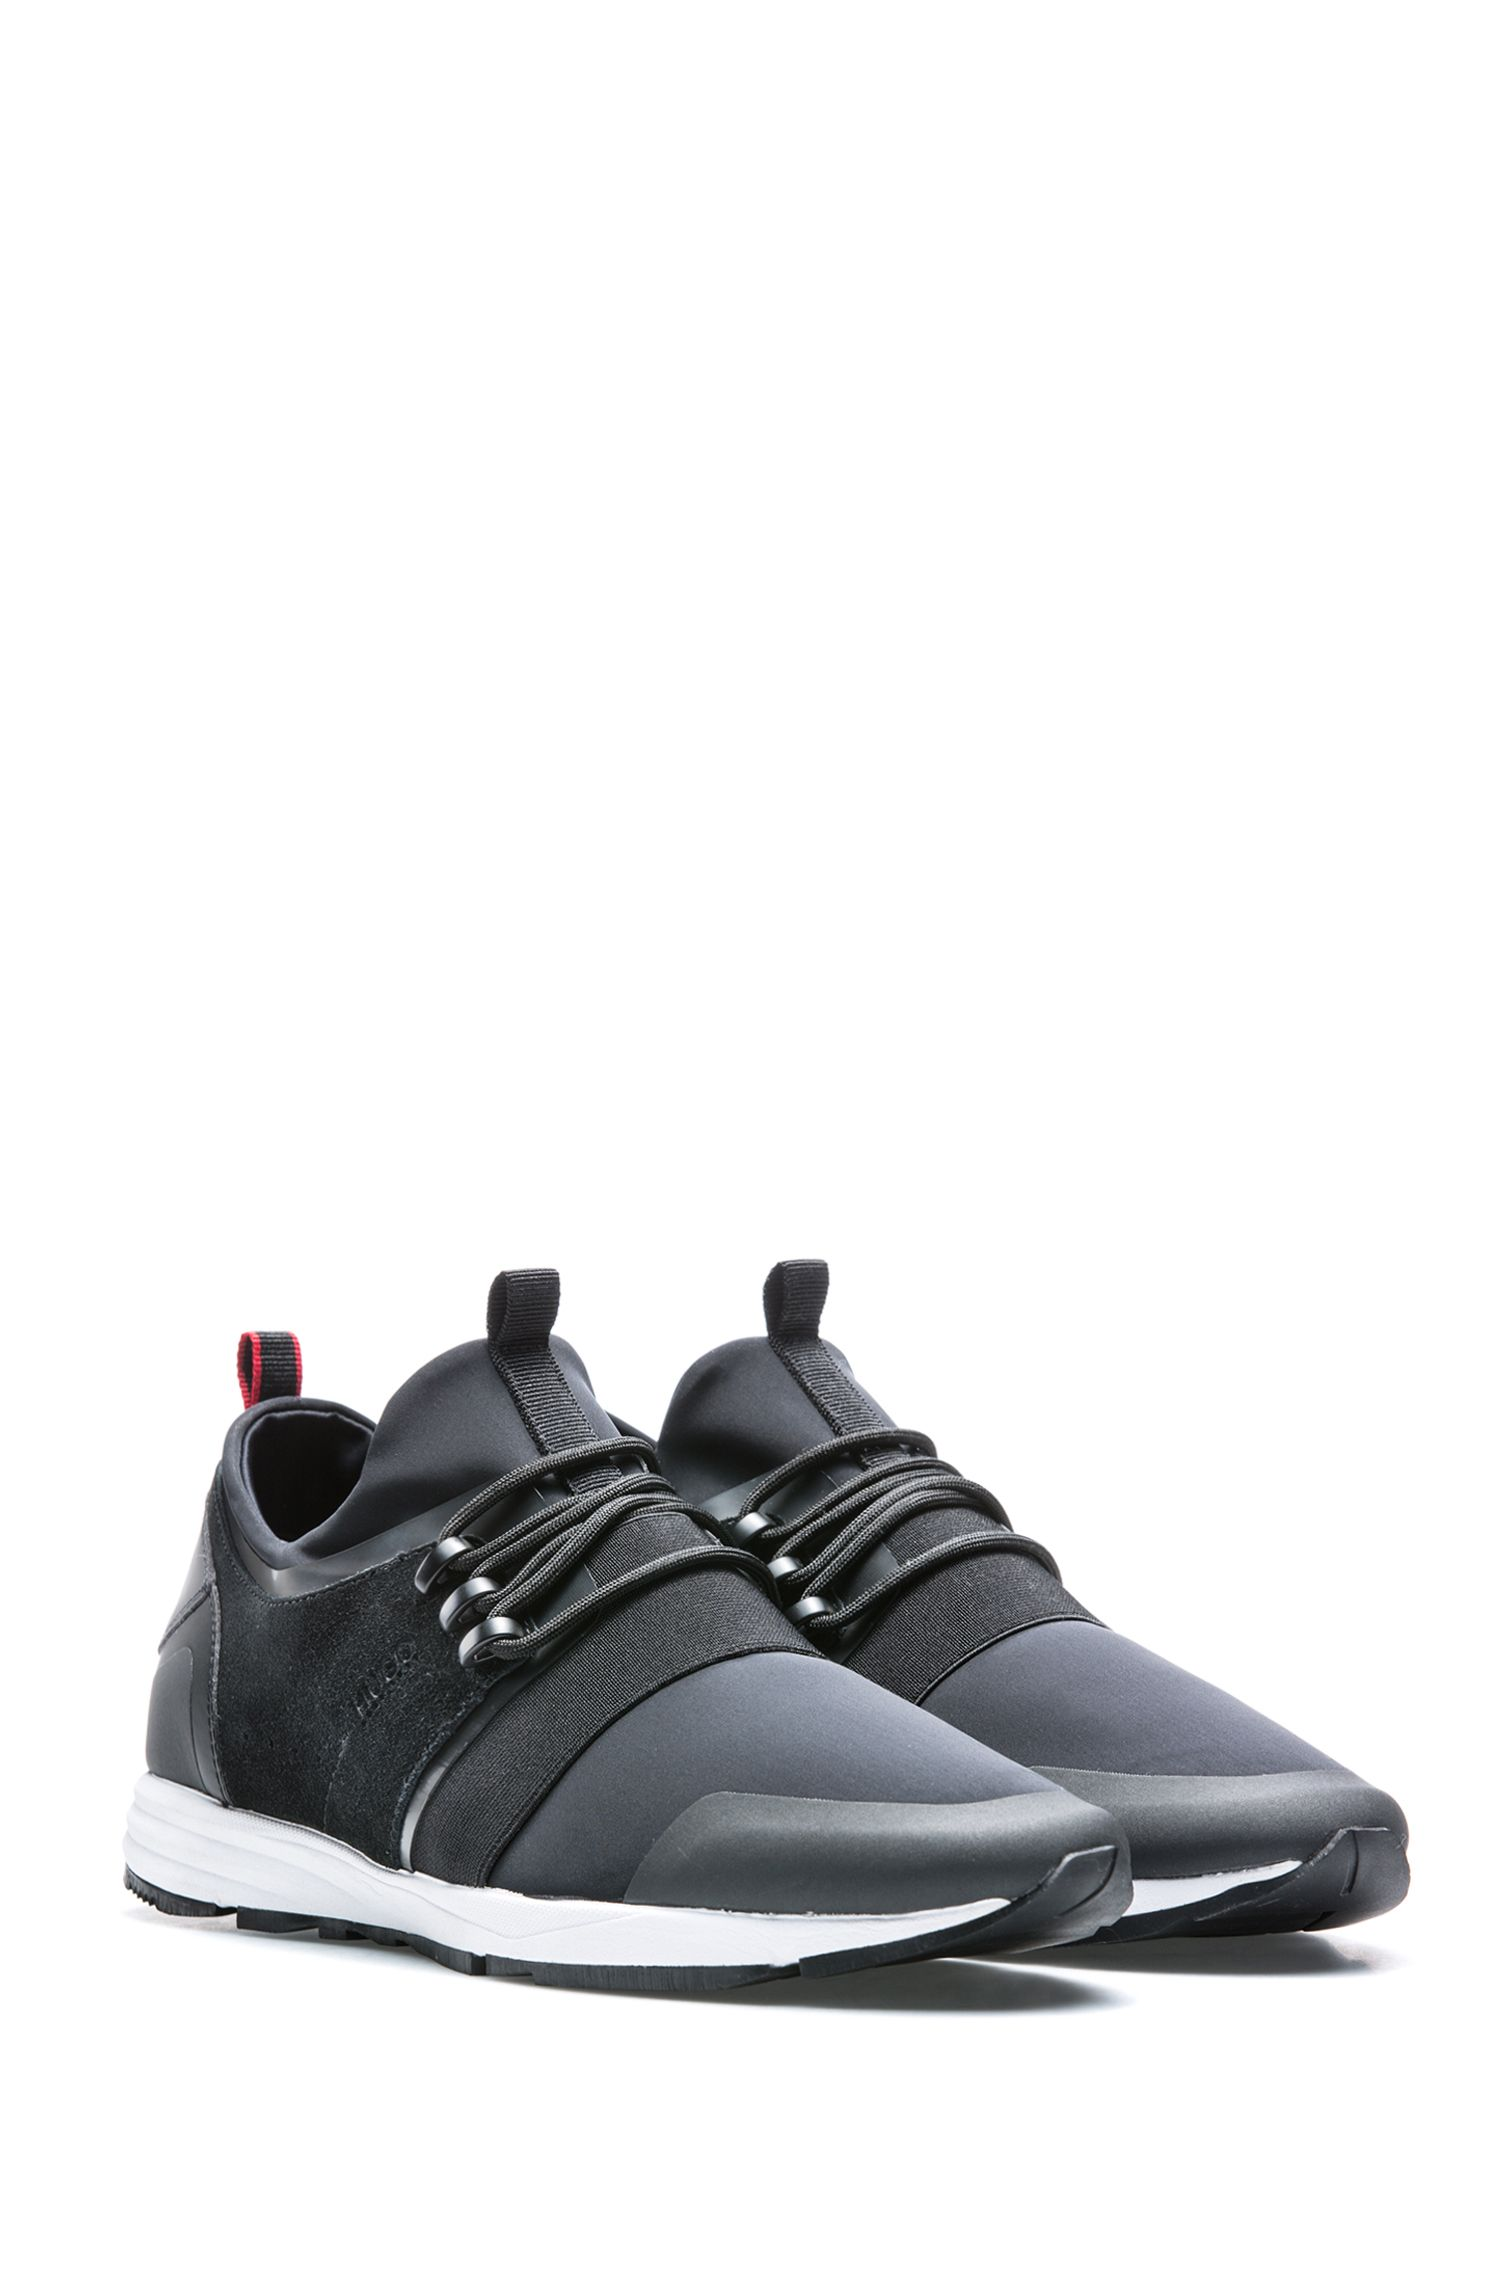 Hybrid trainers with neoprene sock